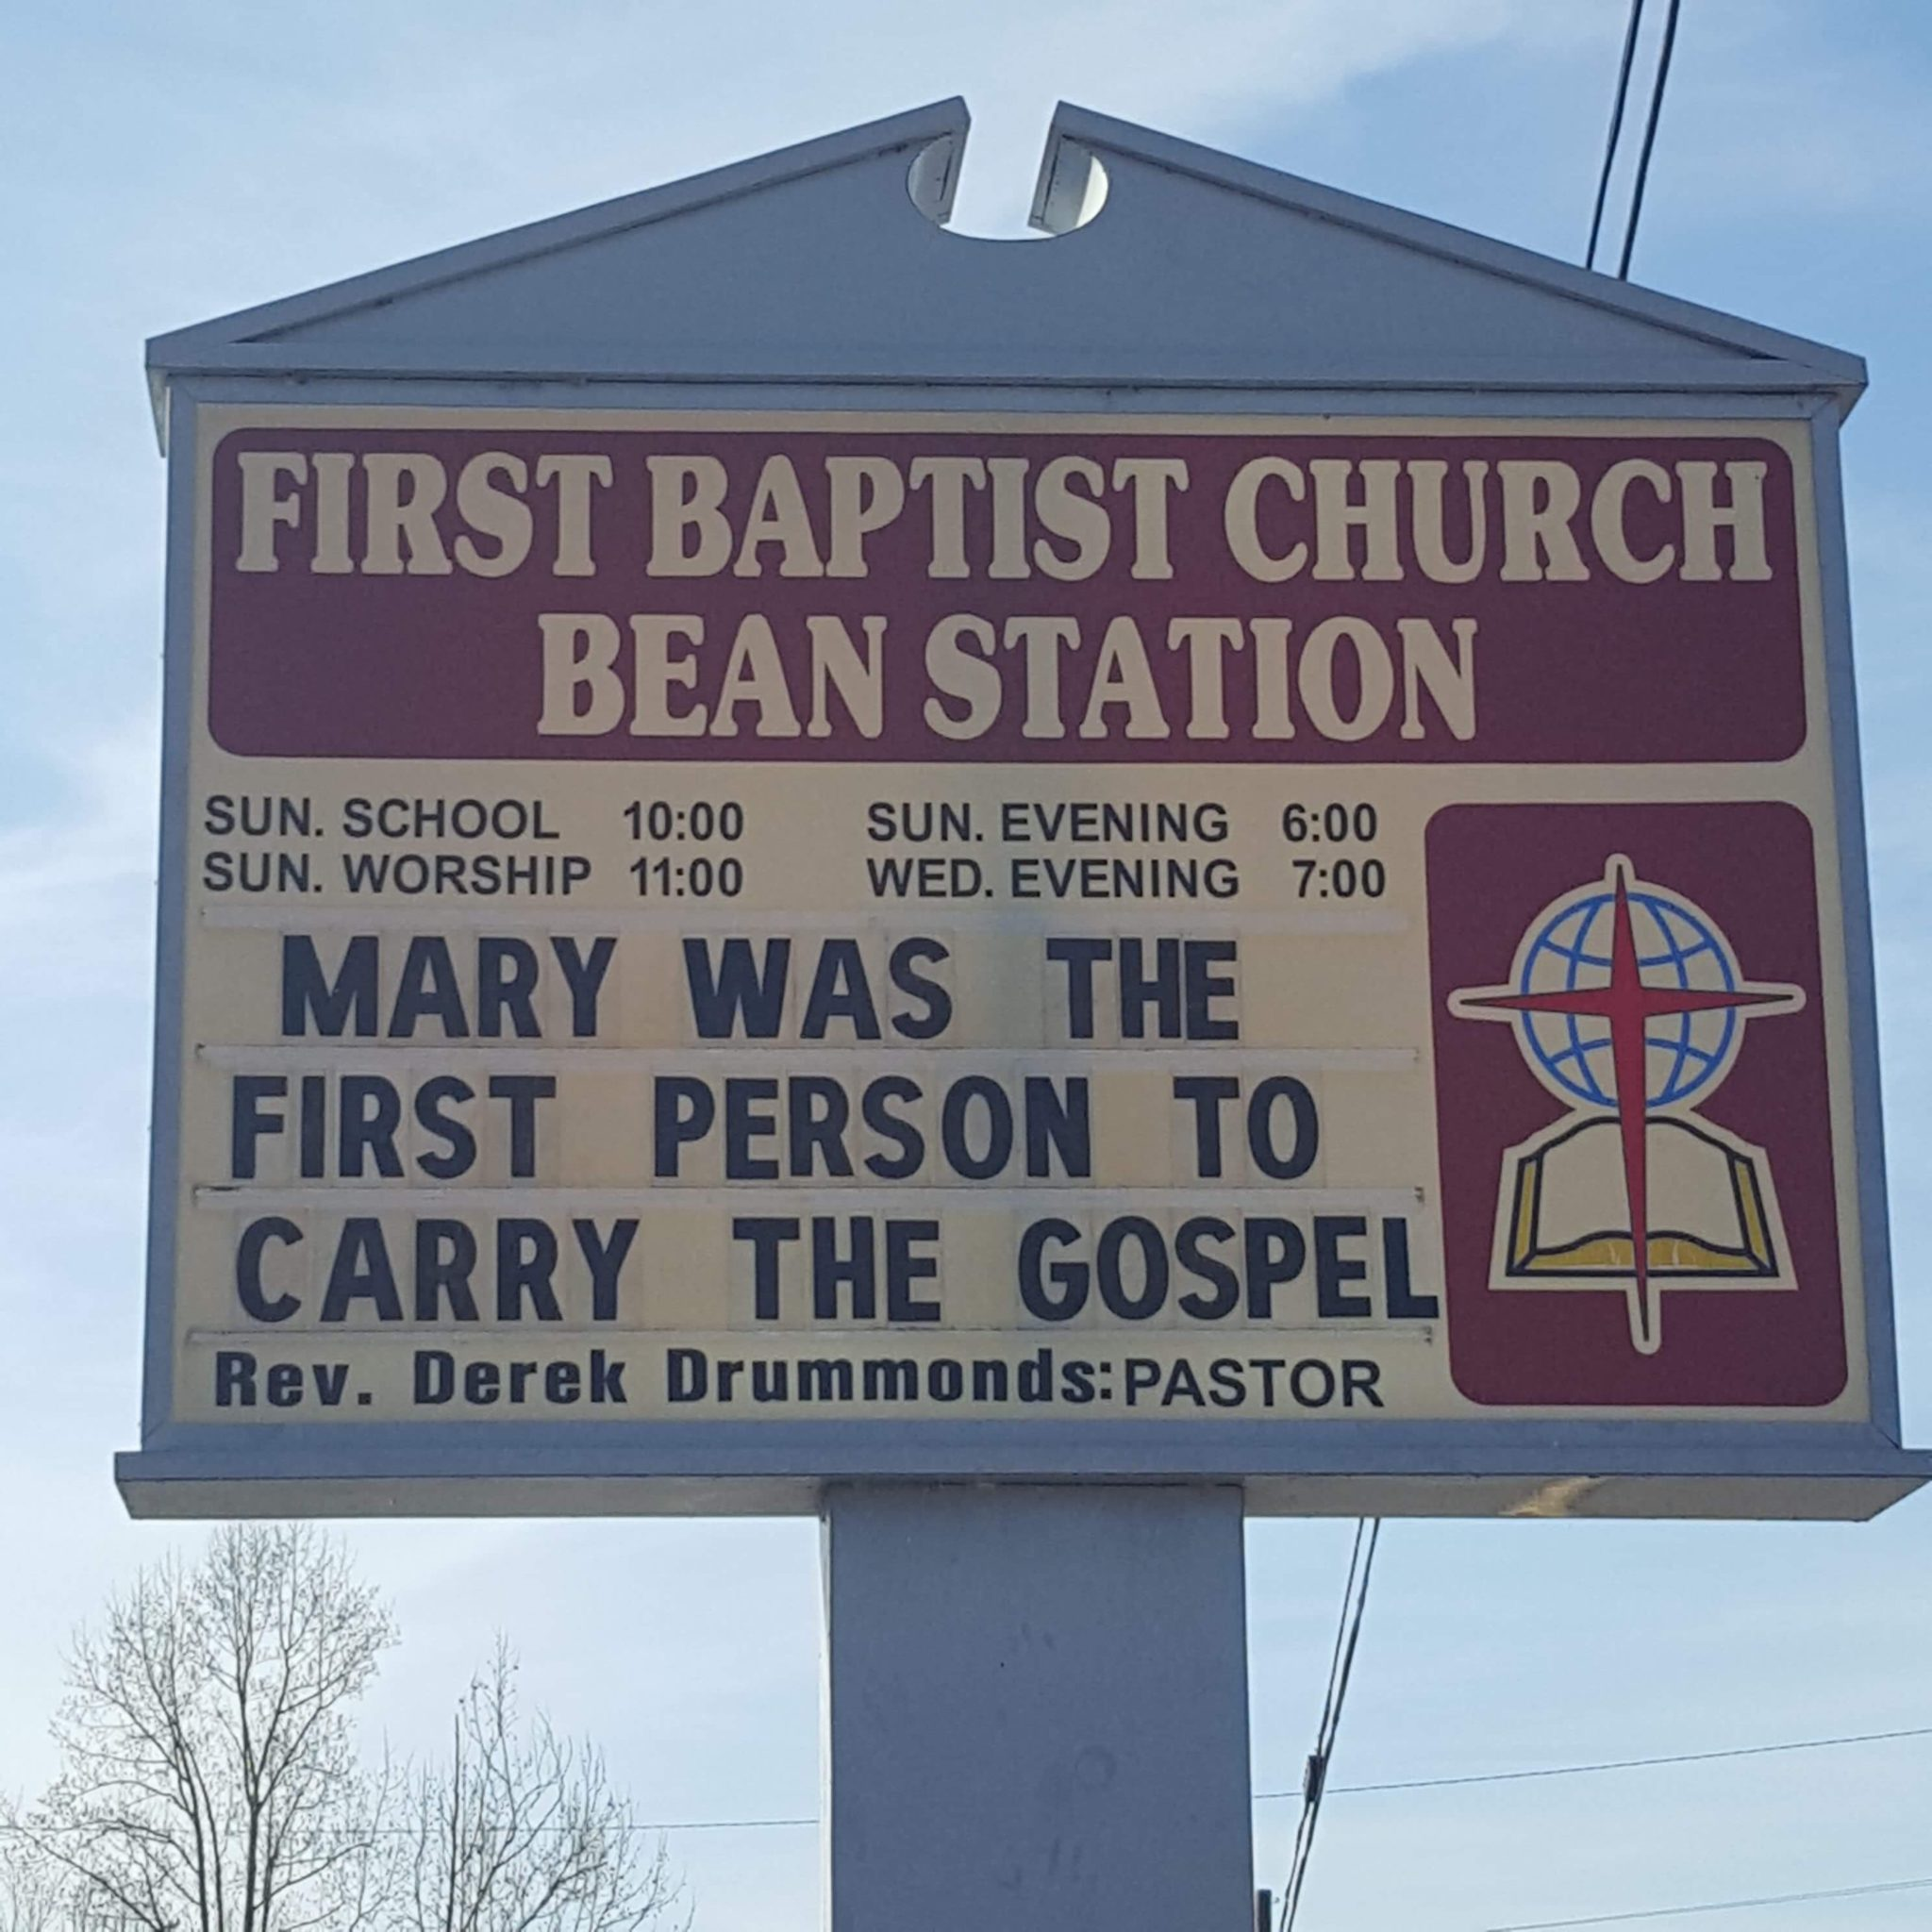 Mary was the first person to carry the gospel church sign